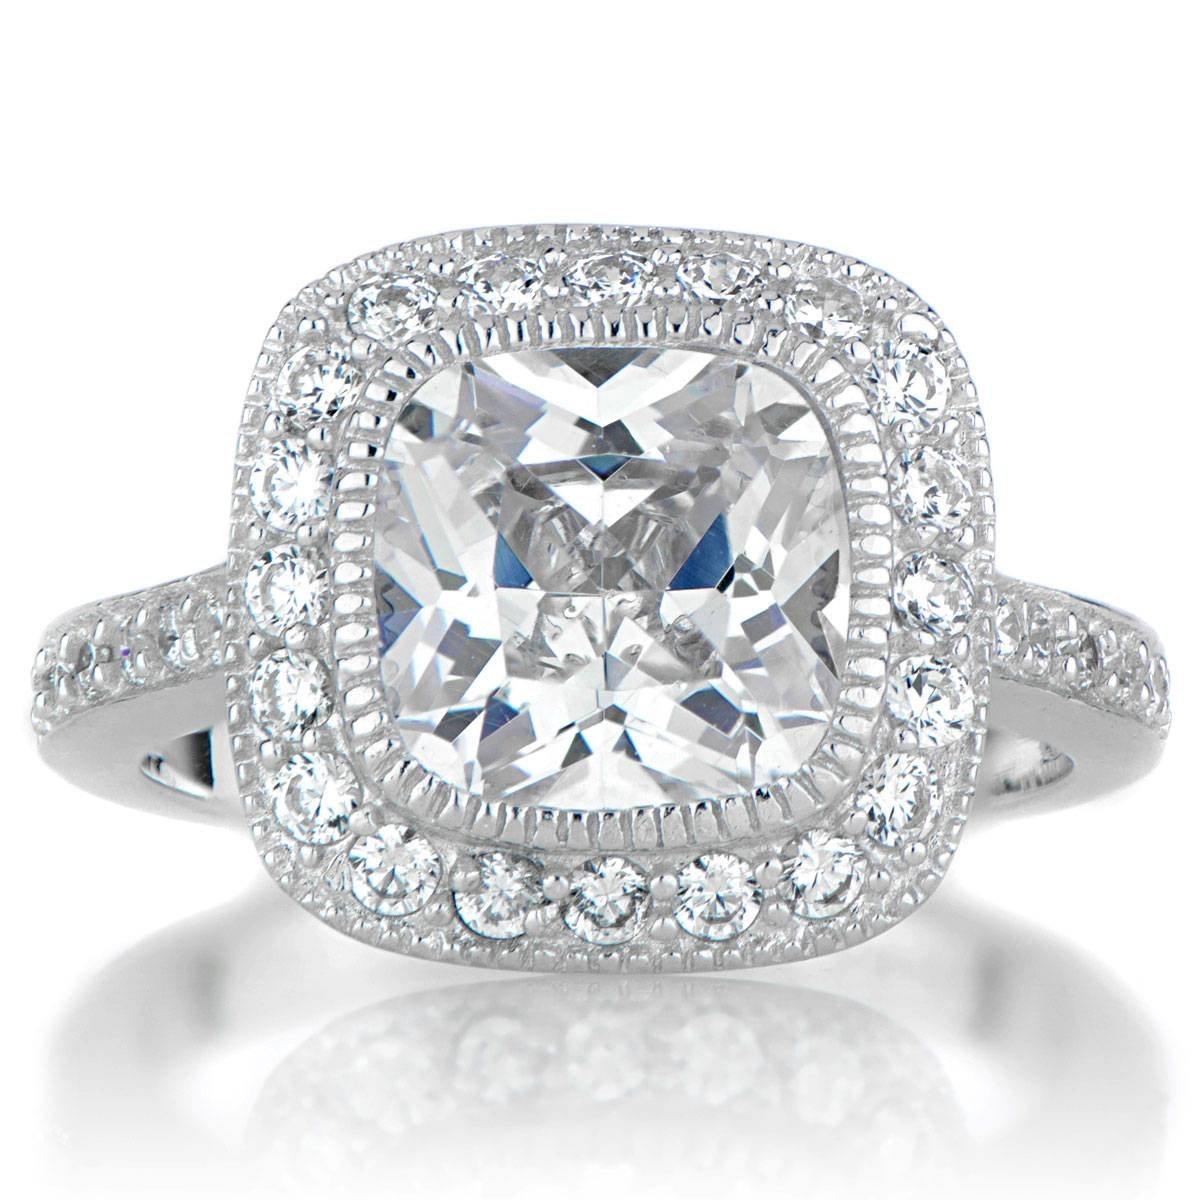 Vintage Style Halo Cushion Cut Cz Engagement Ring Intended For Vintage Halo Engagement Rings (View 14 of 15)